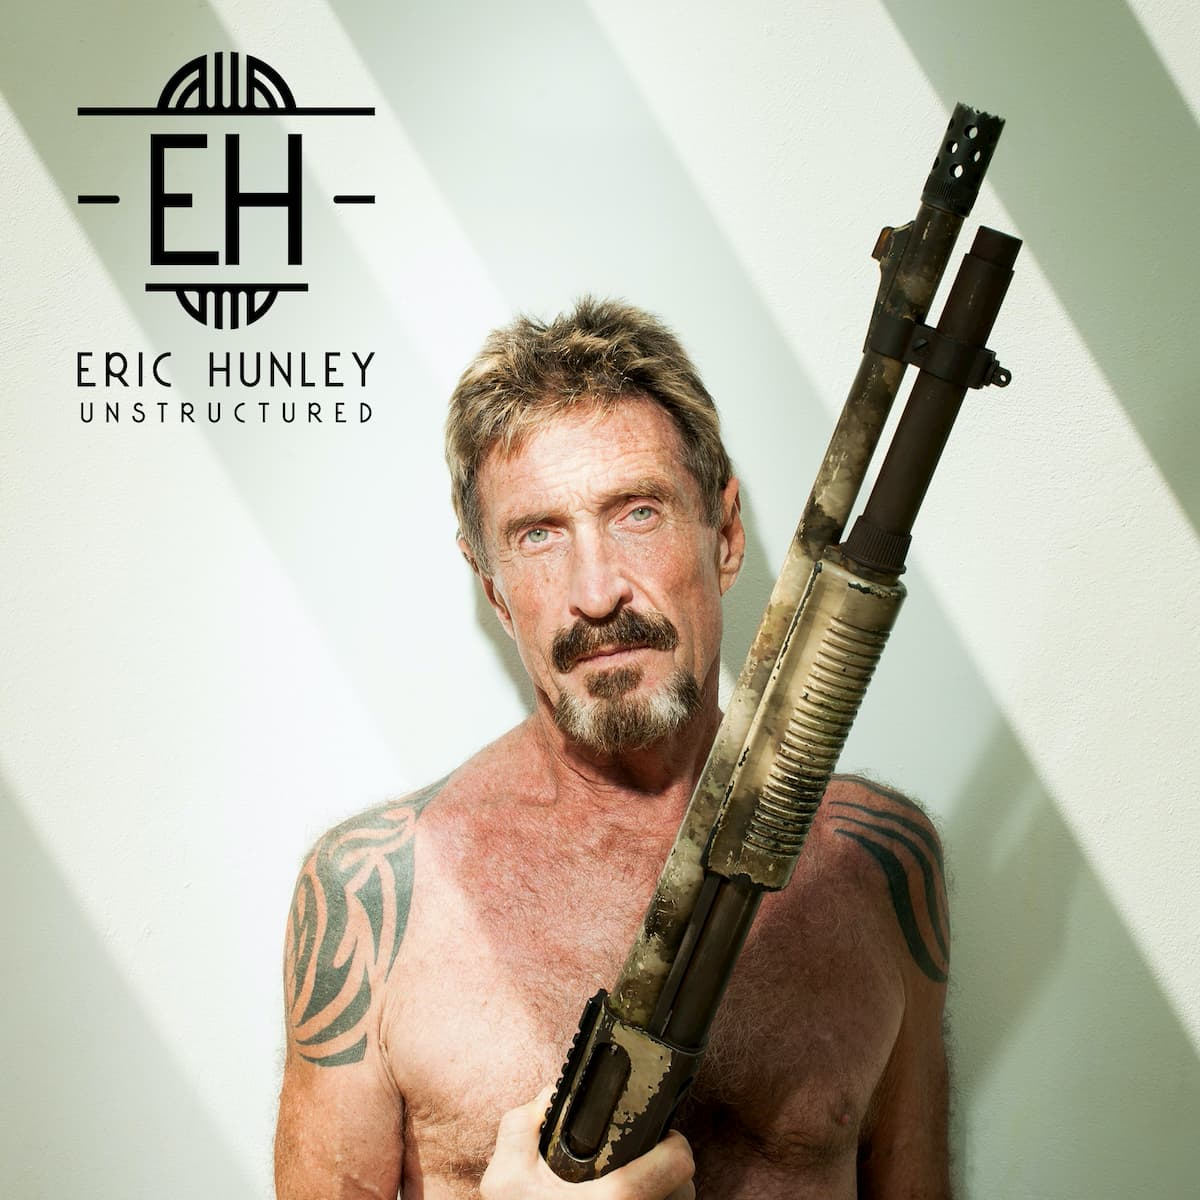 John McAfee is a Presidential Candidate on the run